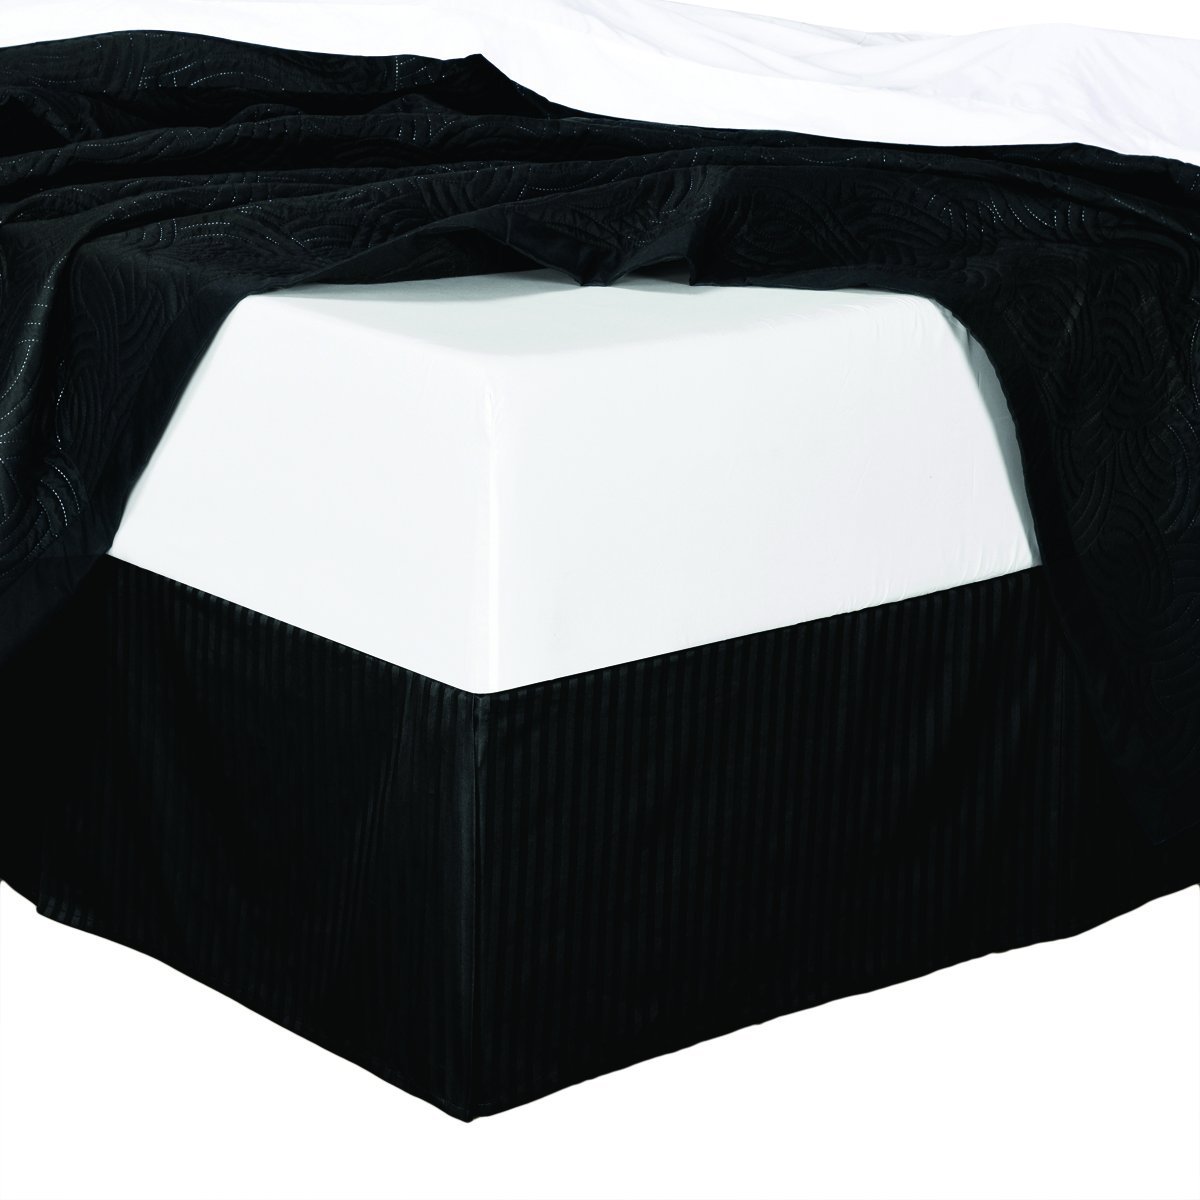 Full Striped Black Wrinkle-Free Microfiber Bed-Skirt, Pleated Tailored Bed Skirt with 14'' Drop, 95gsm, 100% Microfiber.